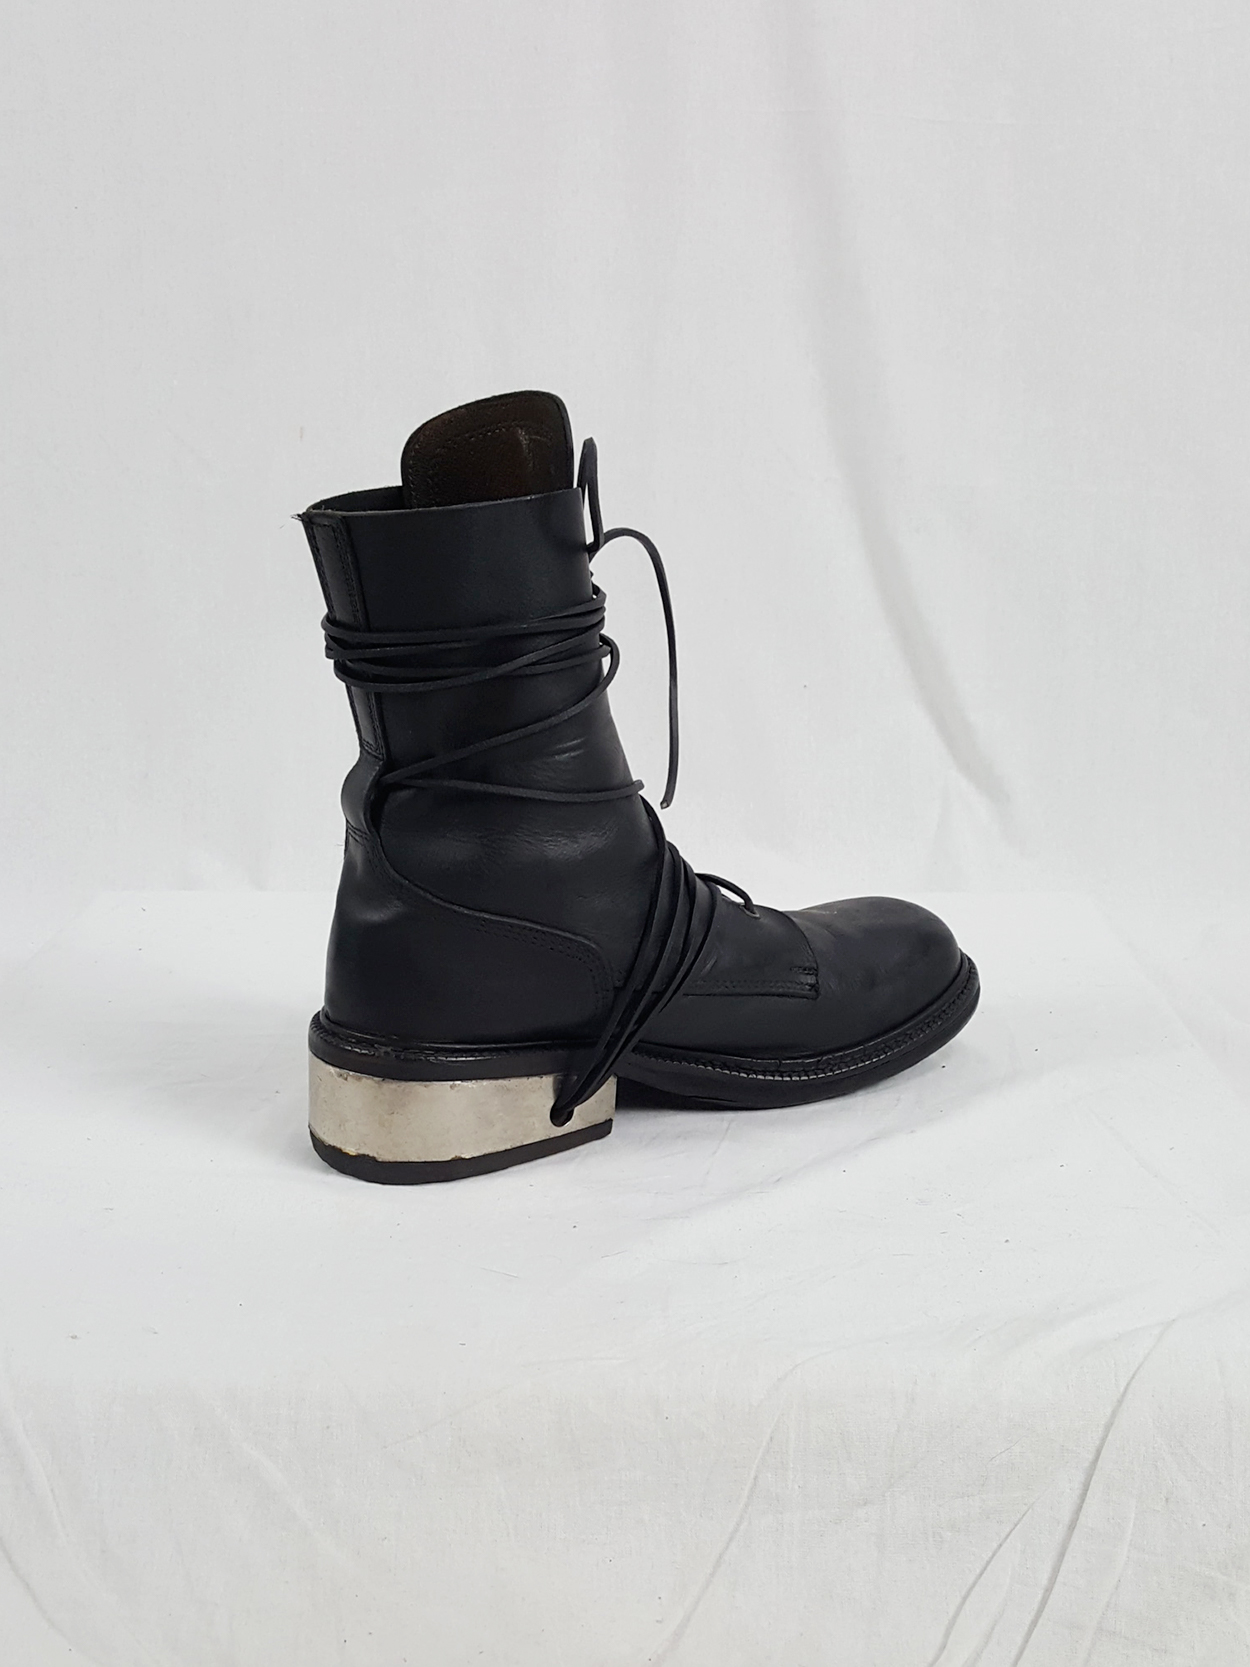 vaniitas vintage Dirk Bikkembergs black tall boots with laces through the metal heel 1990S 90S 175034